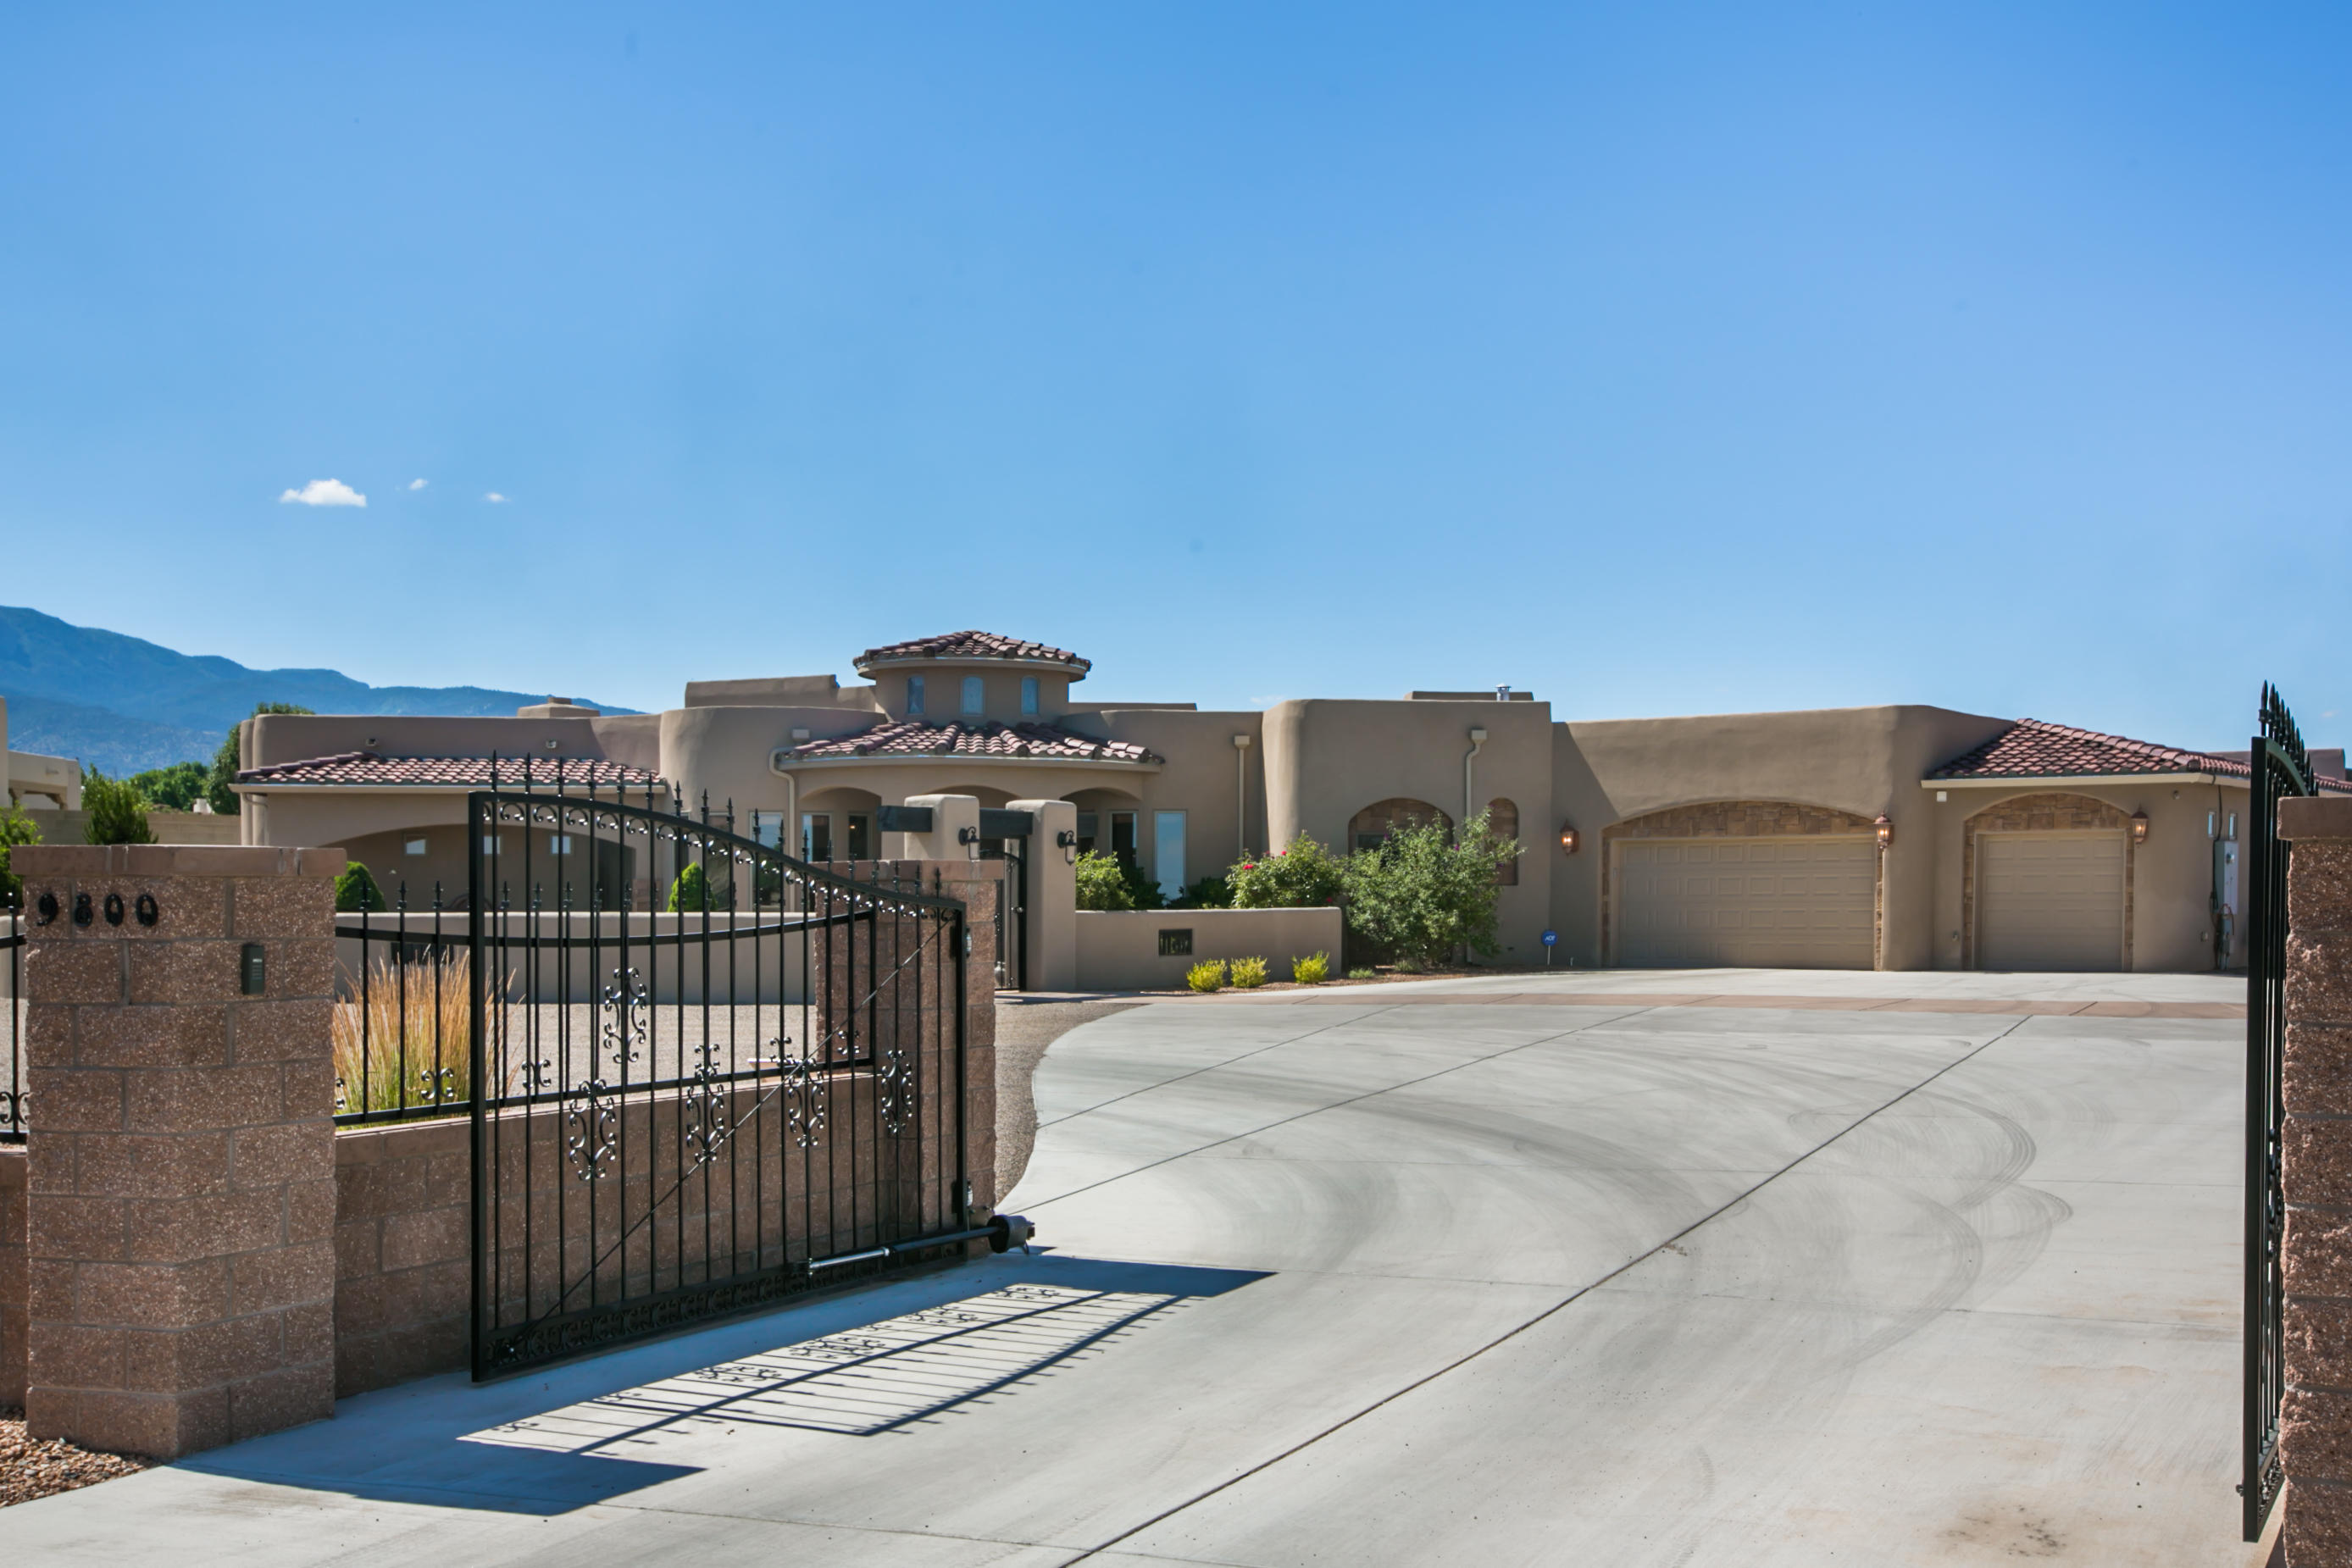 9800 SIGNAL AVENUE NE, ALBUQUERQUE, NM 87122